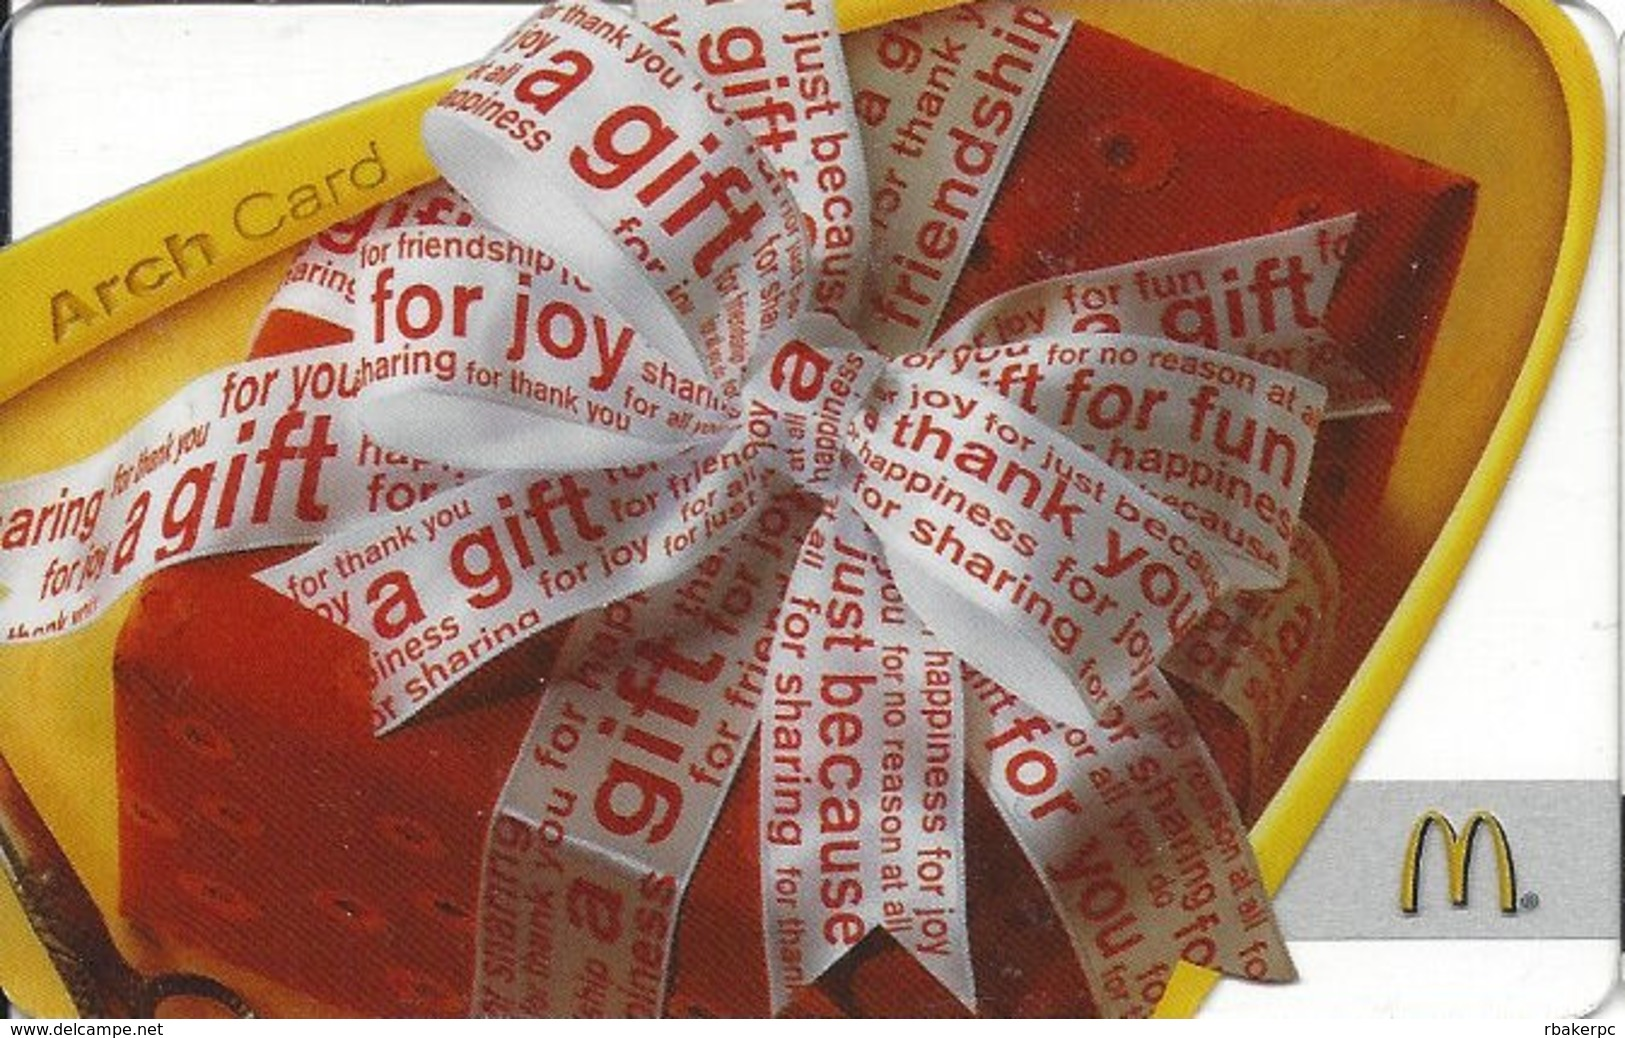 McDonalds Gift Card Copyright 2008 - Gift Cards